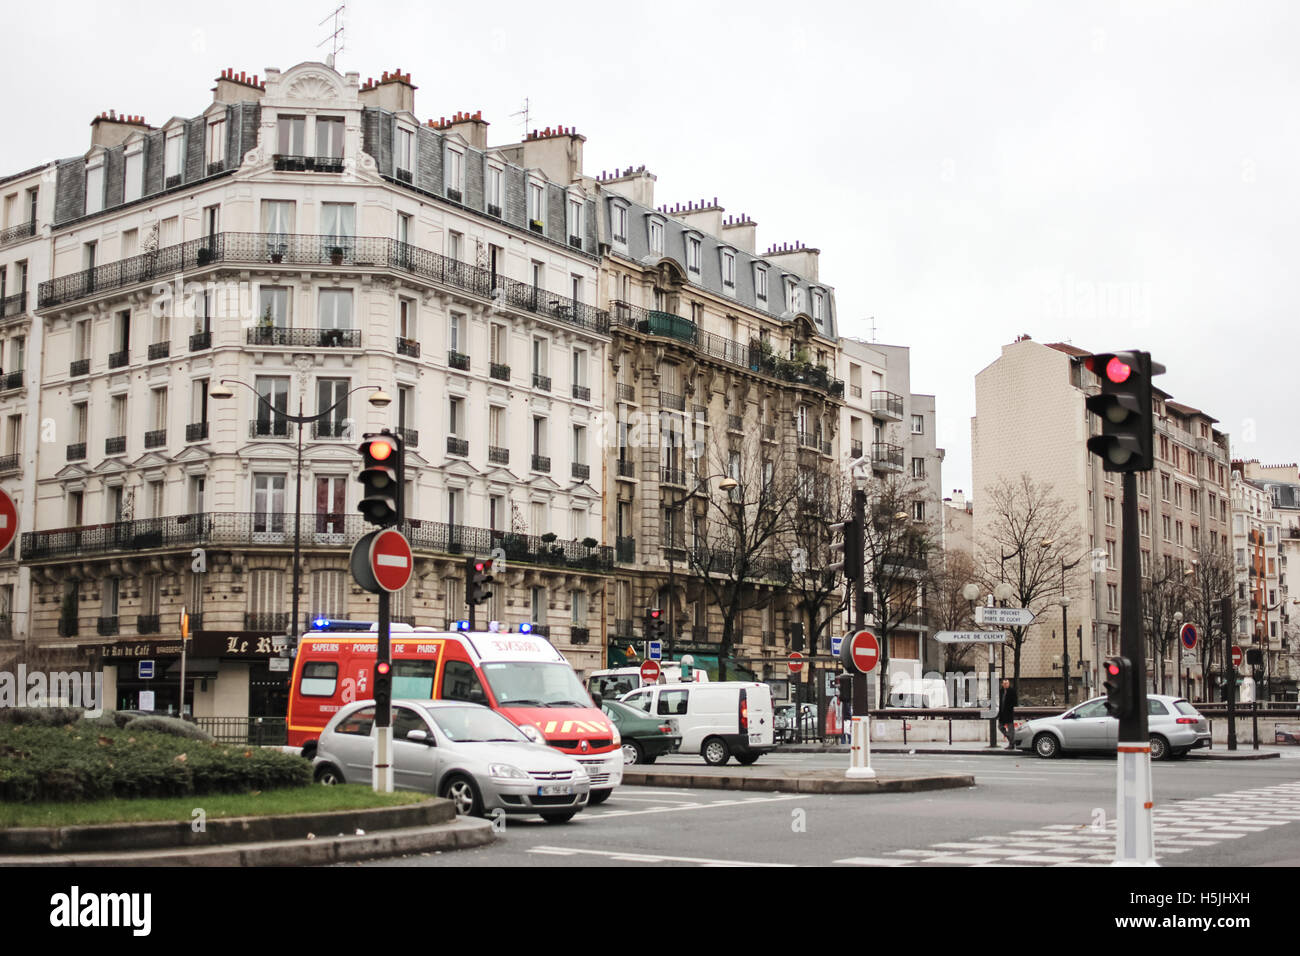 PARIS, FRANCE - JANUARY 1, 2012: Typical Paris street view with traffic - Stock Image